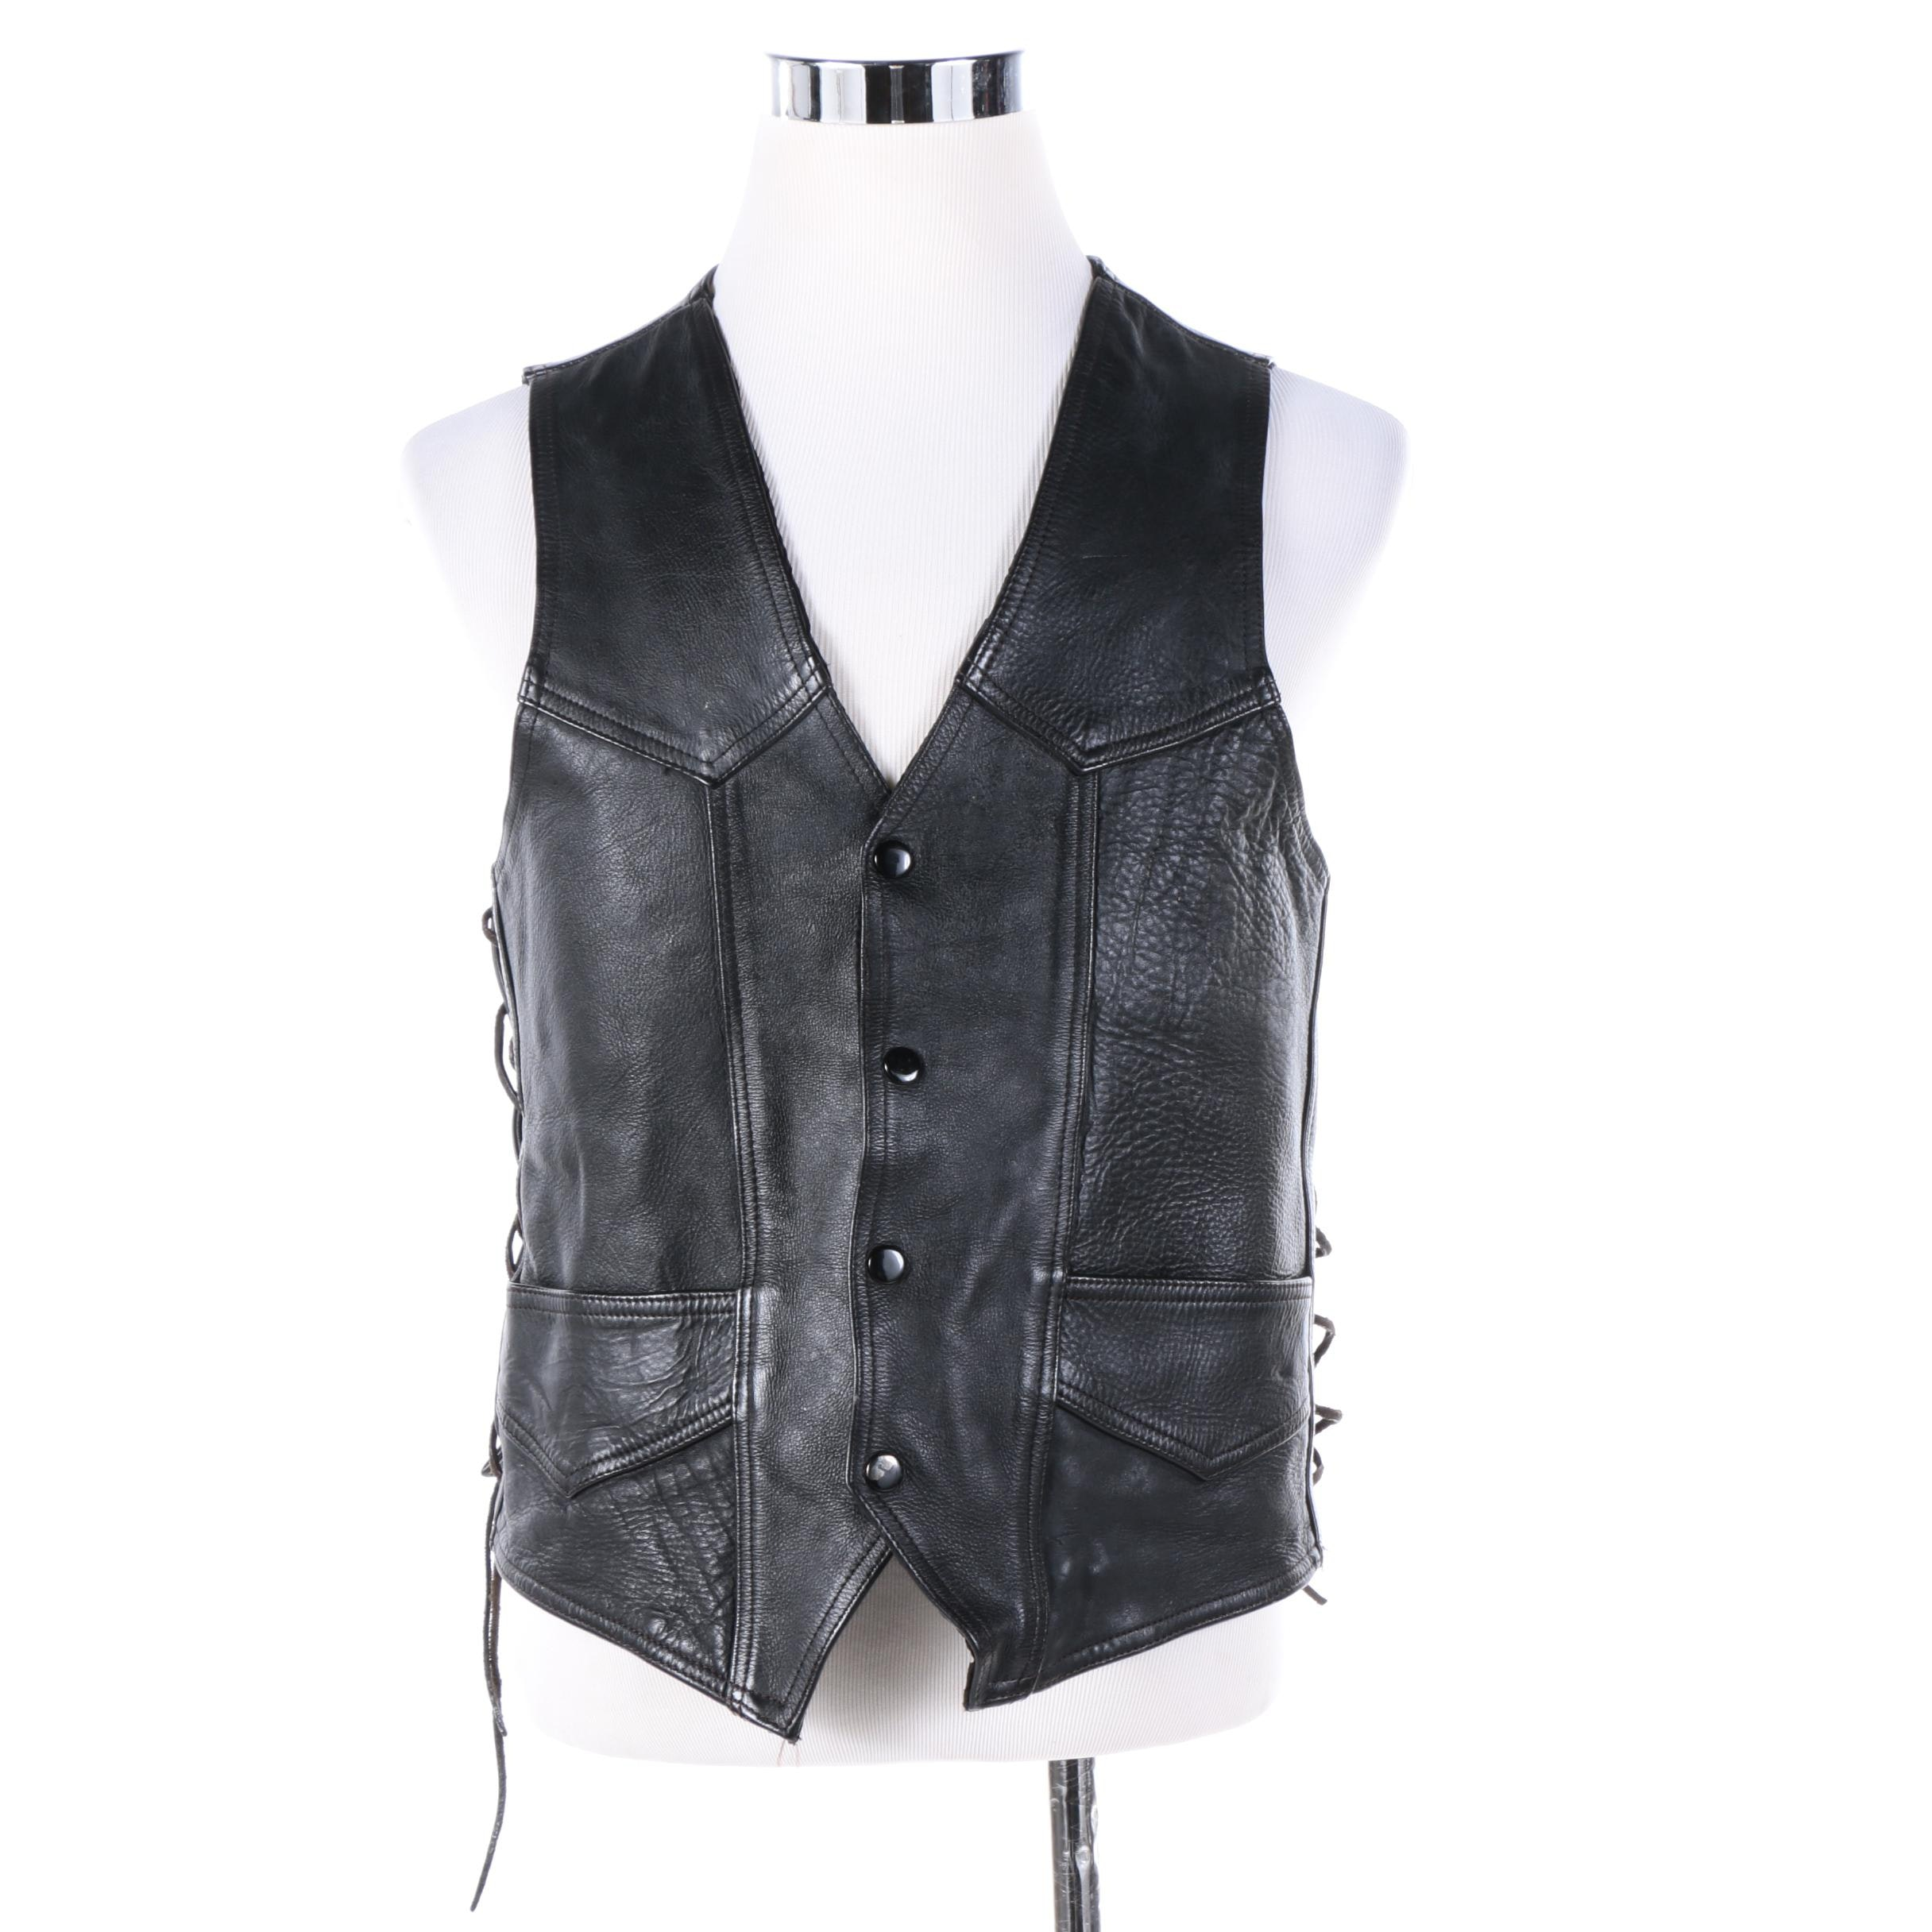 Women's Harley-Davidson Black Leather Vest with Eagle Applique